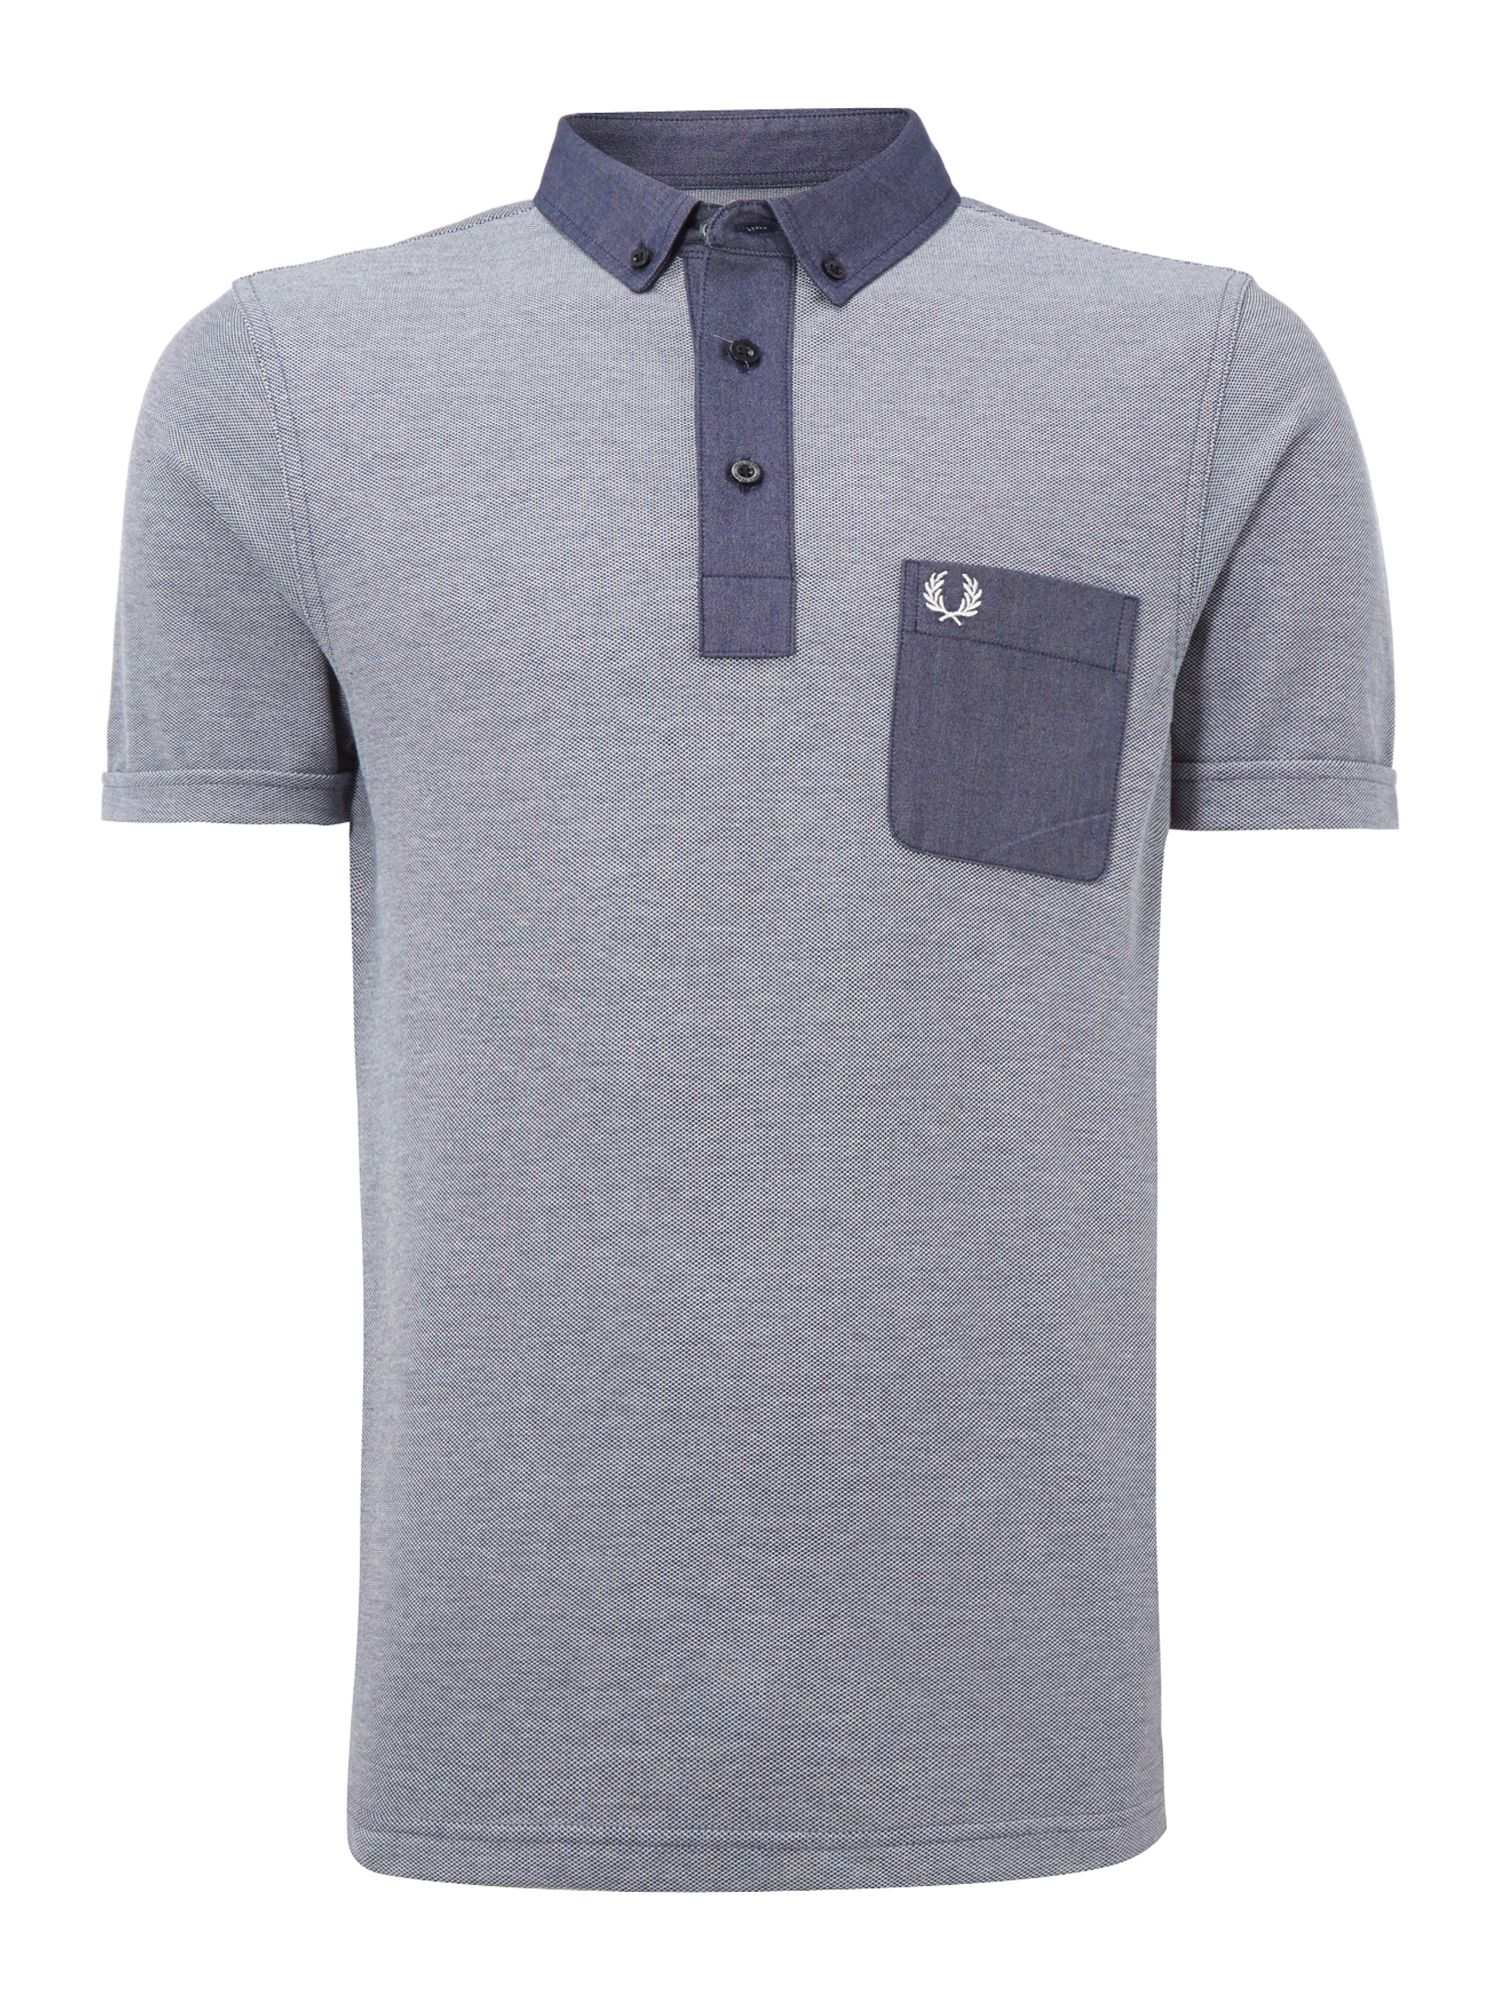 Men&39s Fred Perry Trimmed tonic print polo shirt Dark Blue